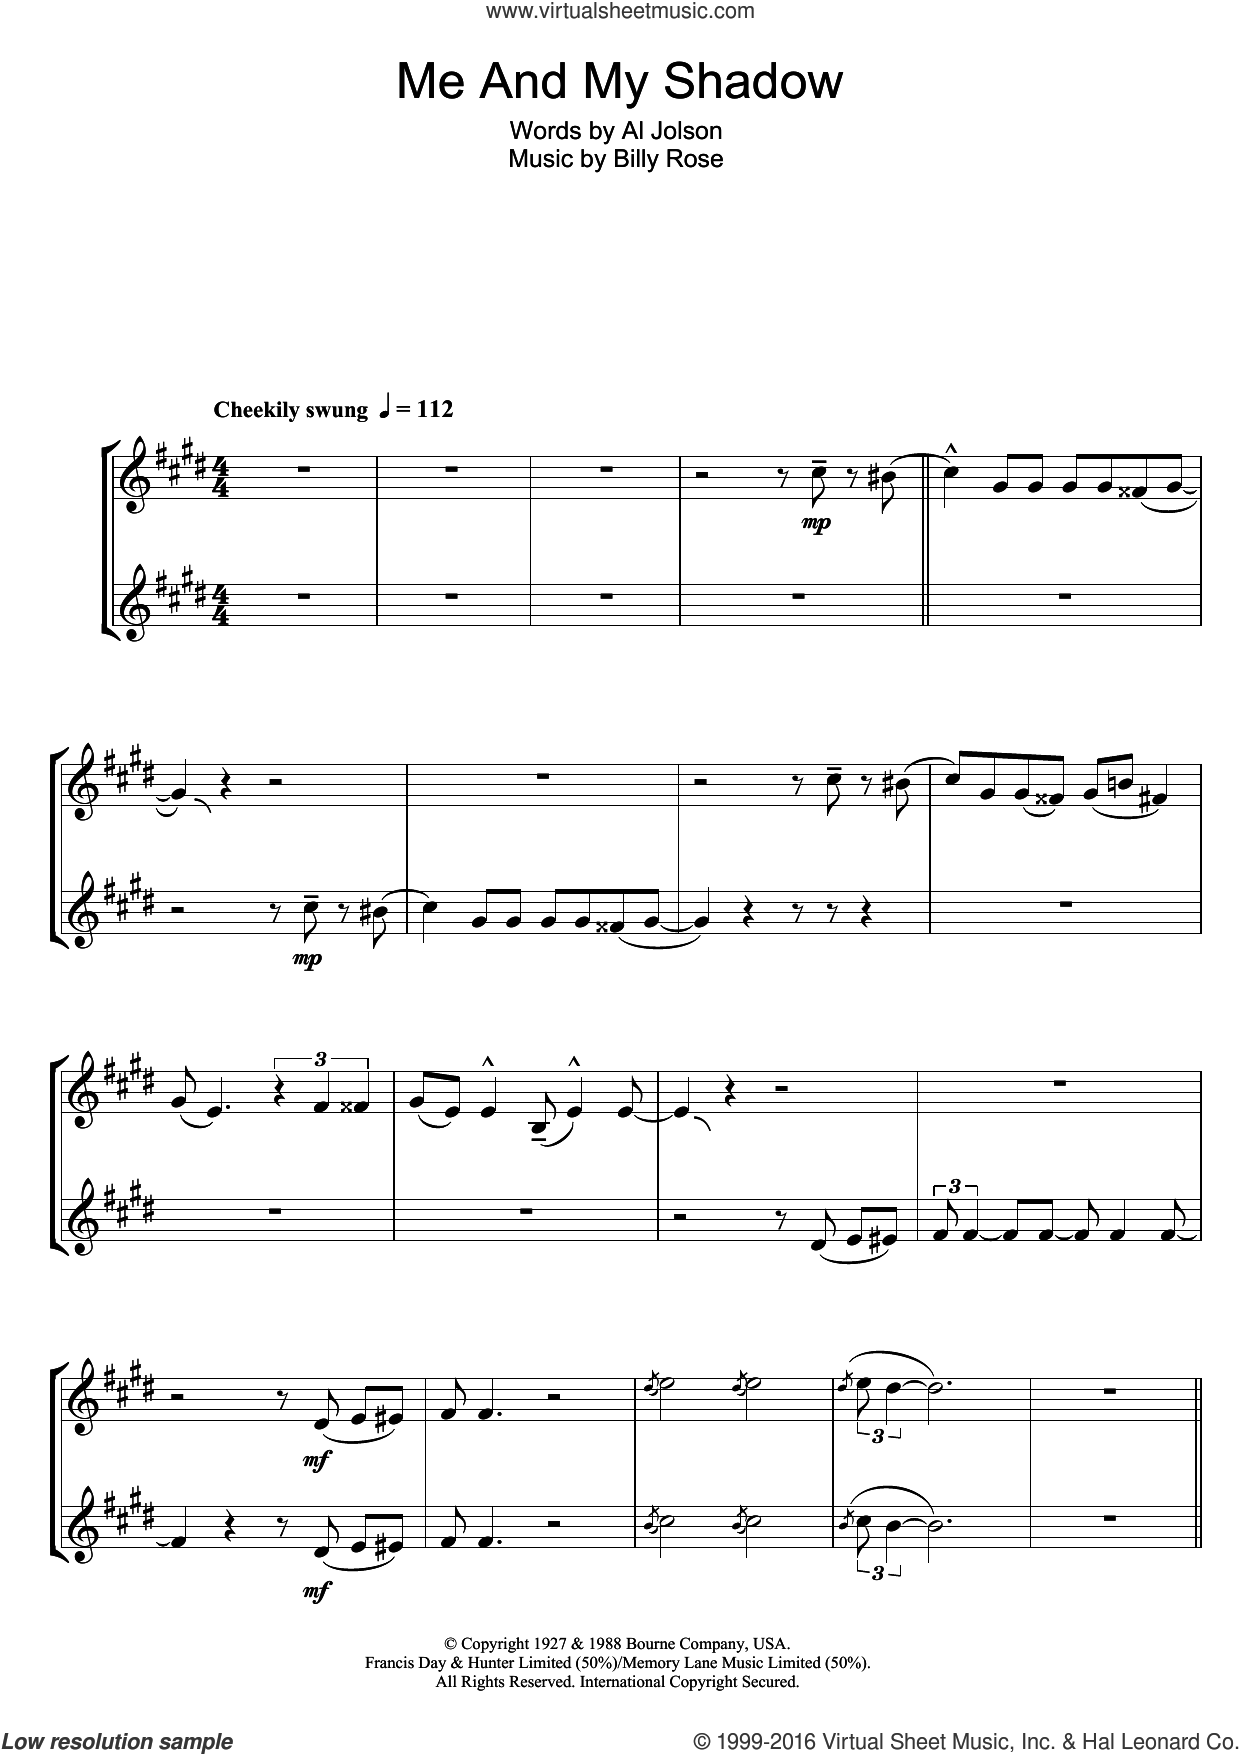 Me And My Shadow sheet music for clarinet solo by Frank Sinatra, Al Jolson and Billy Rose, intermediate skill level